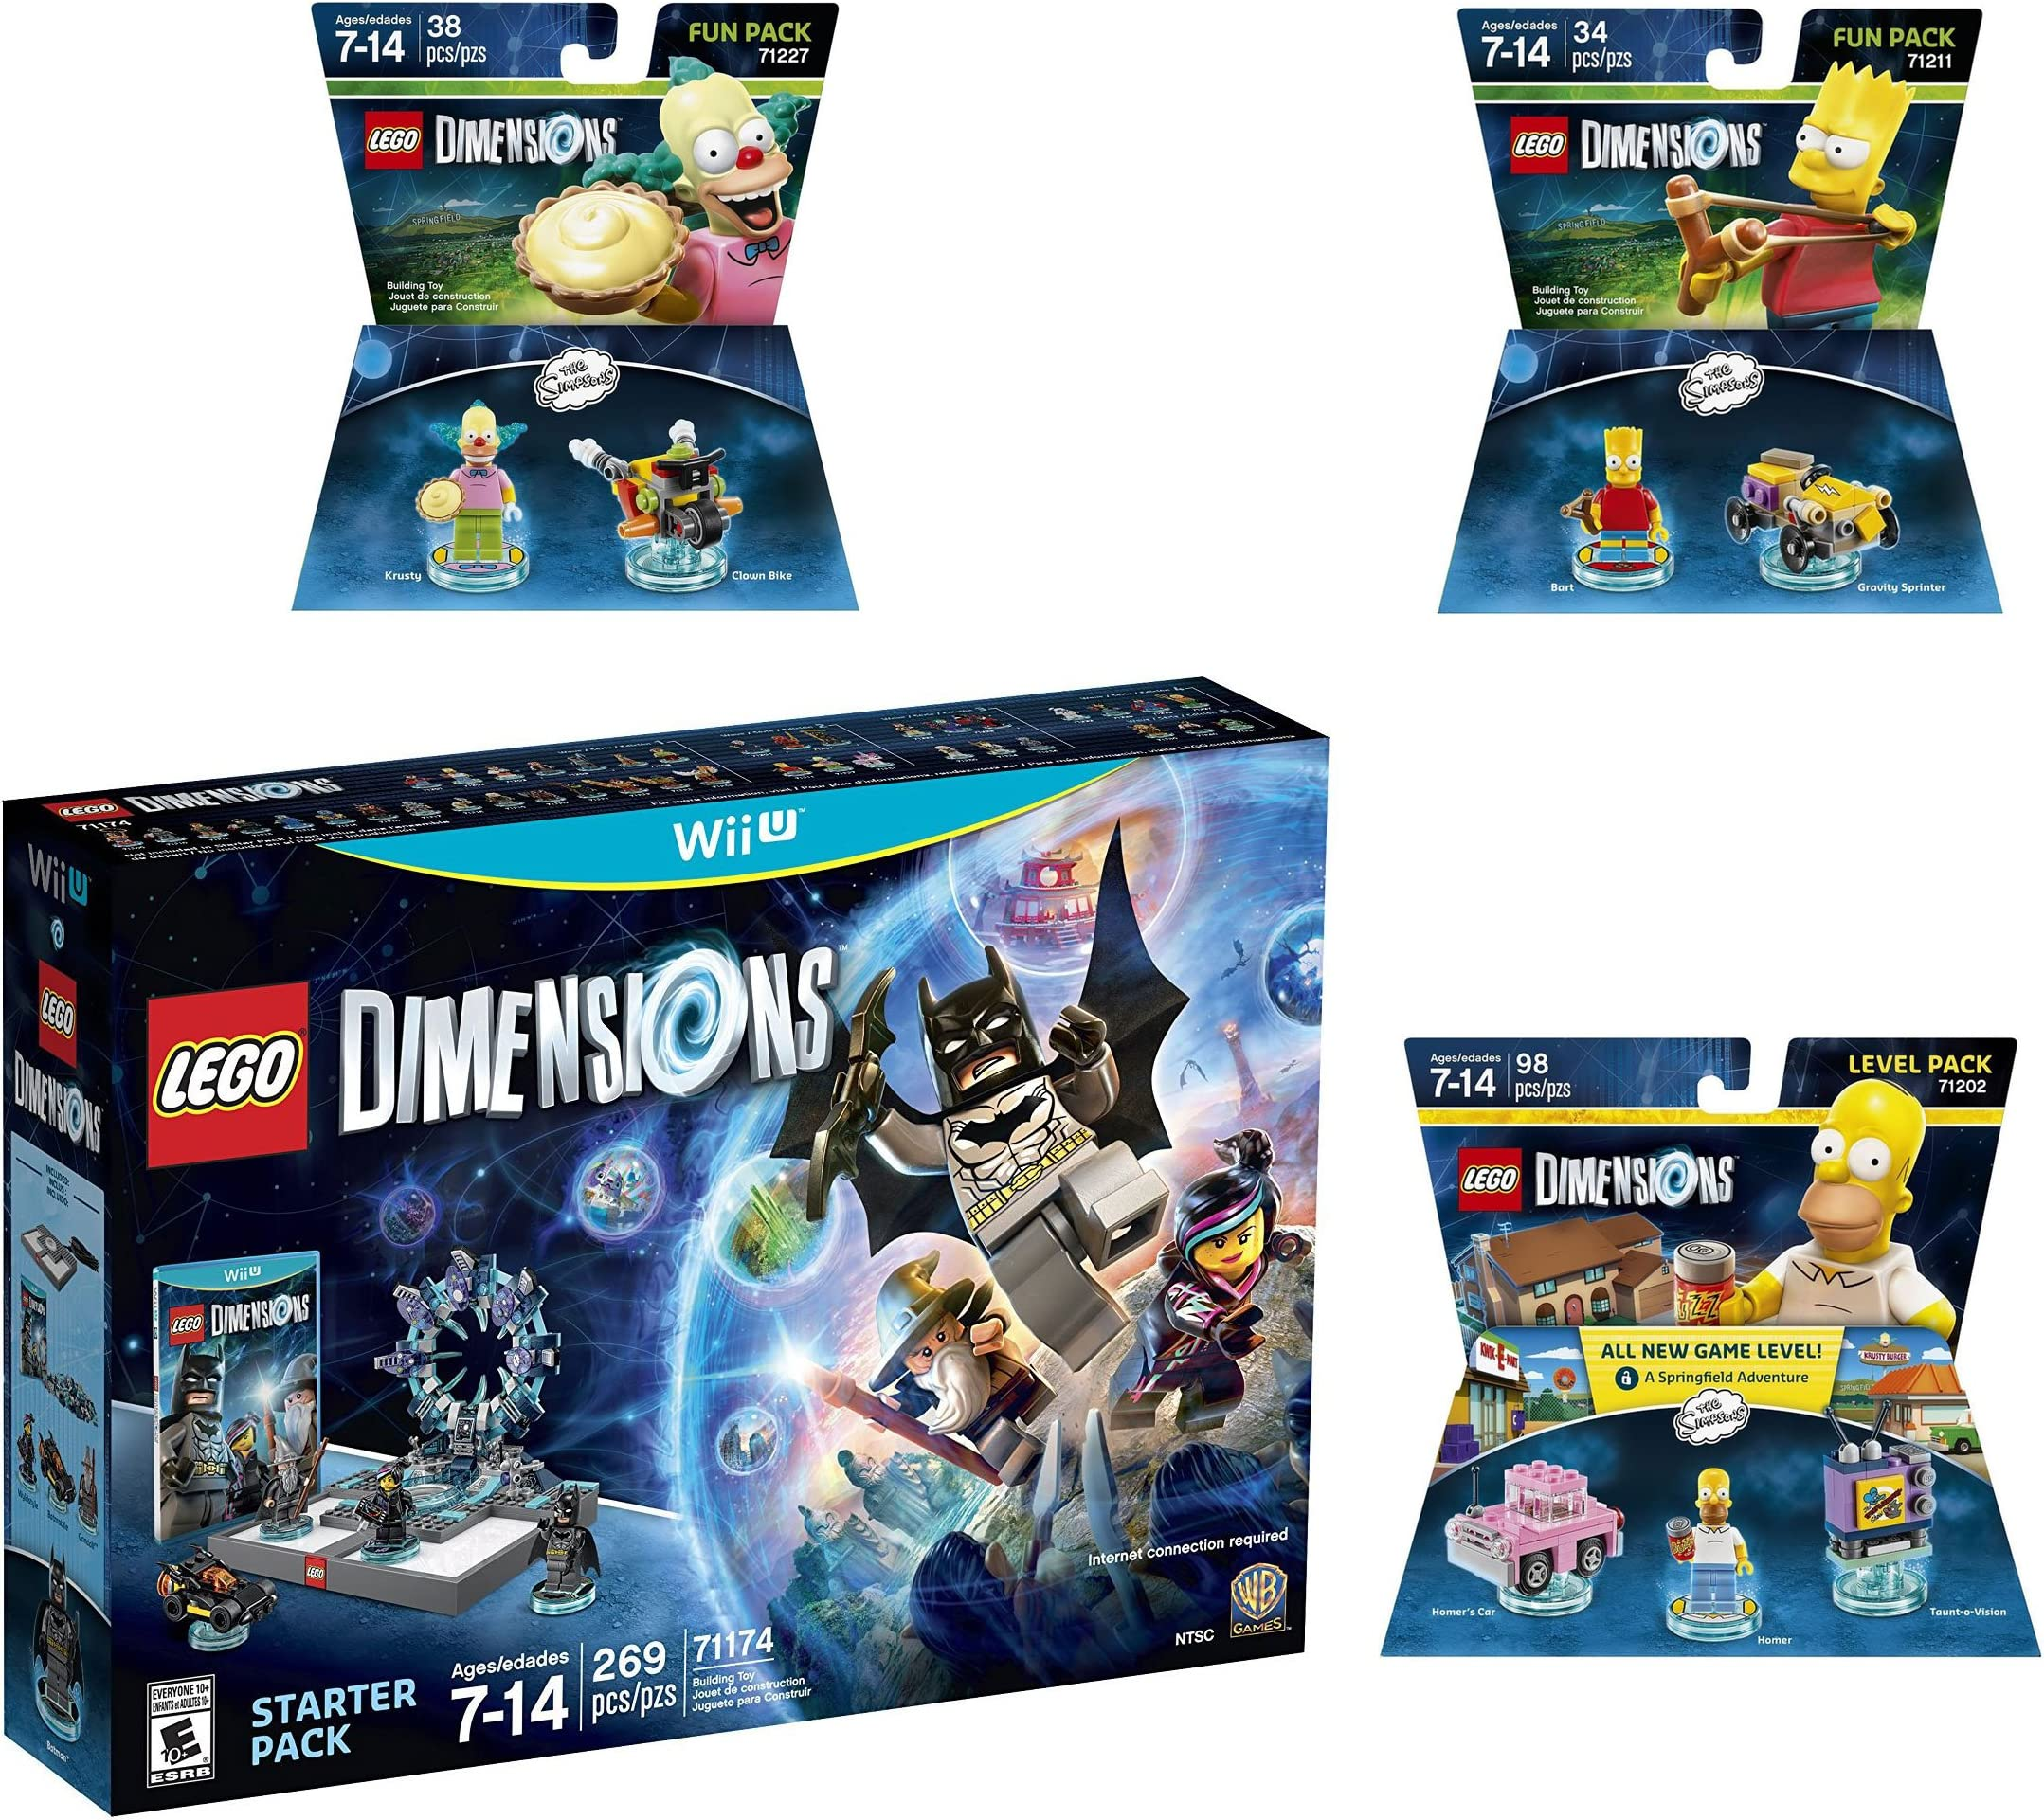 Amazon.com: Lego Dimensions Starter Pack + The Simpsons ...